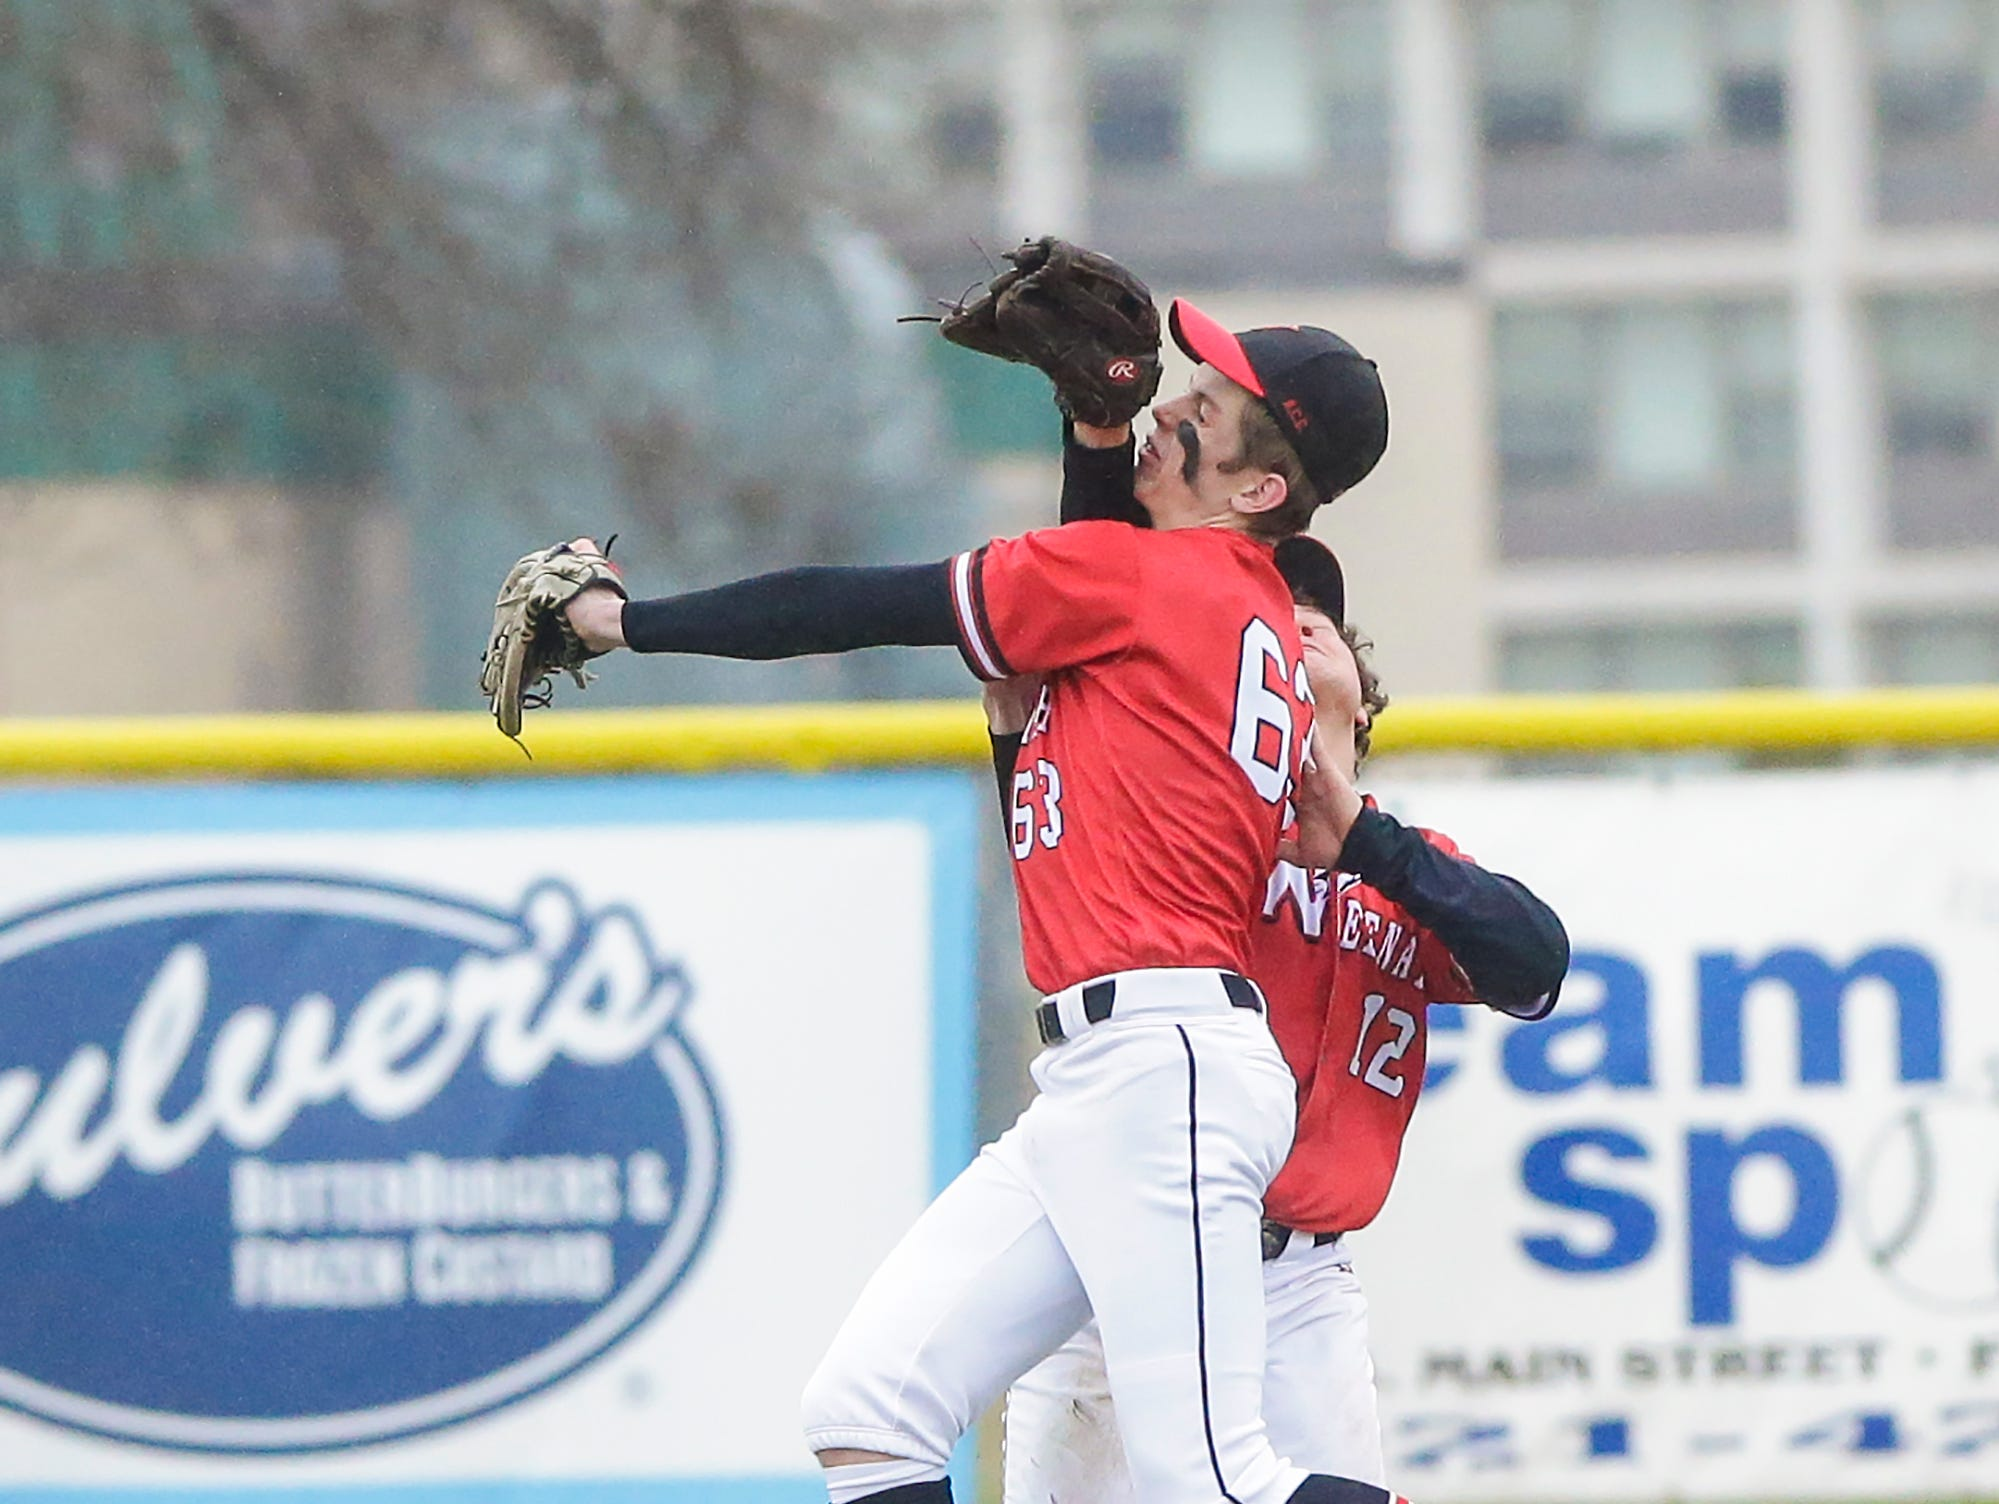 Neenah High School baseball's Samuel Dietrich (63) and Orion Rieden (12) colide after Dietrich made a catch in short centerfield against Fond du Lac High School during their game Thursday, April 18, 2019 in Fond du Lac, Wis. Doug Raflik/USA TODAY NETWORK-Wisconsin